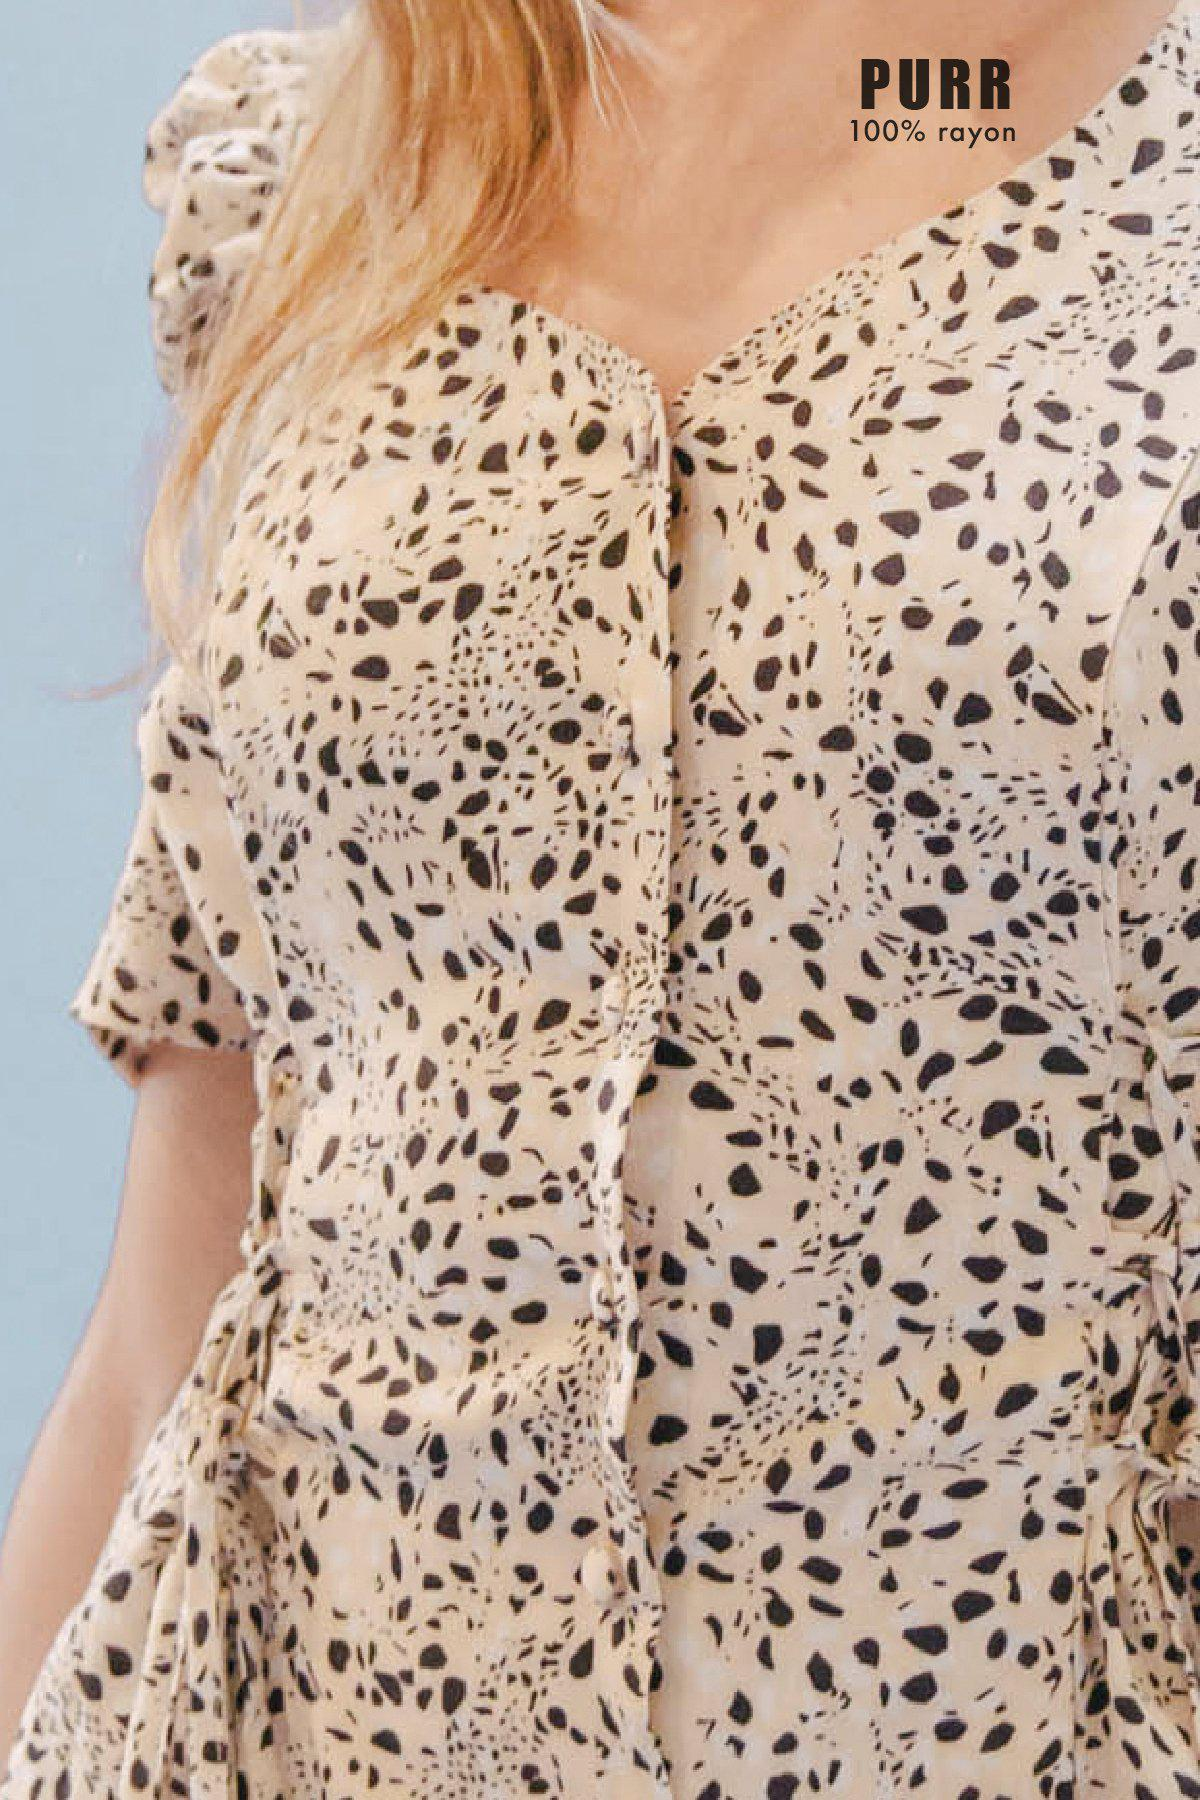 THE DOUBLE LACEUP DRESS ~ PURR 8